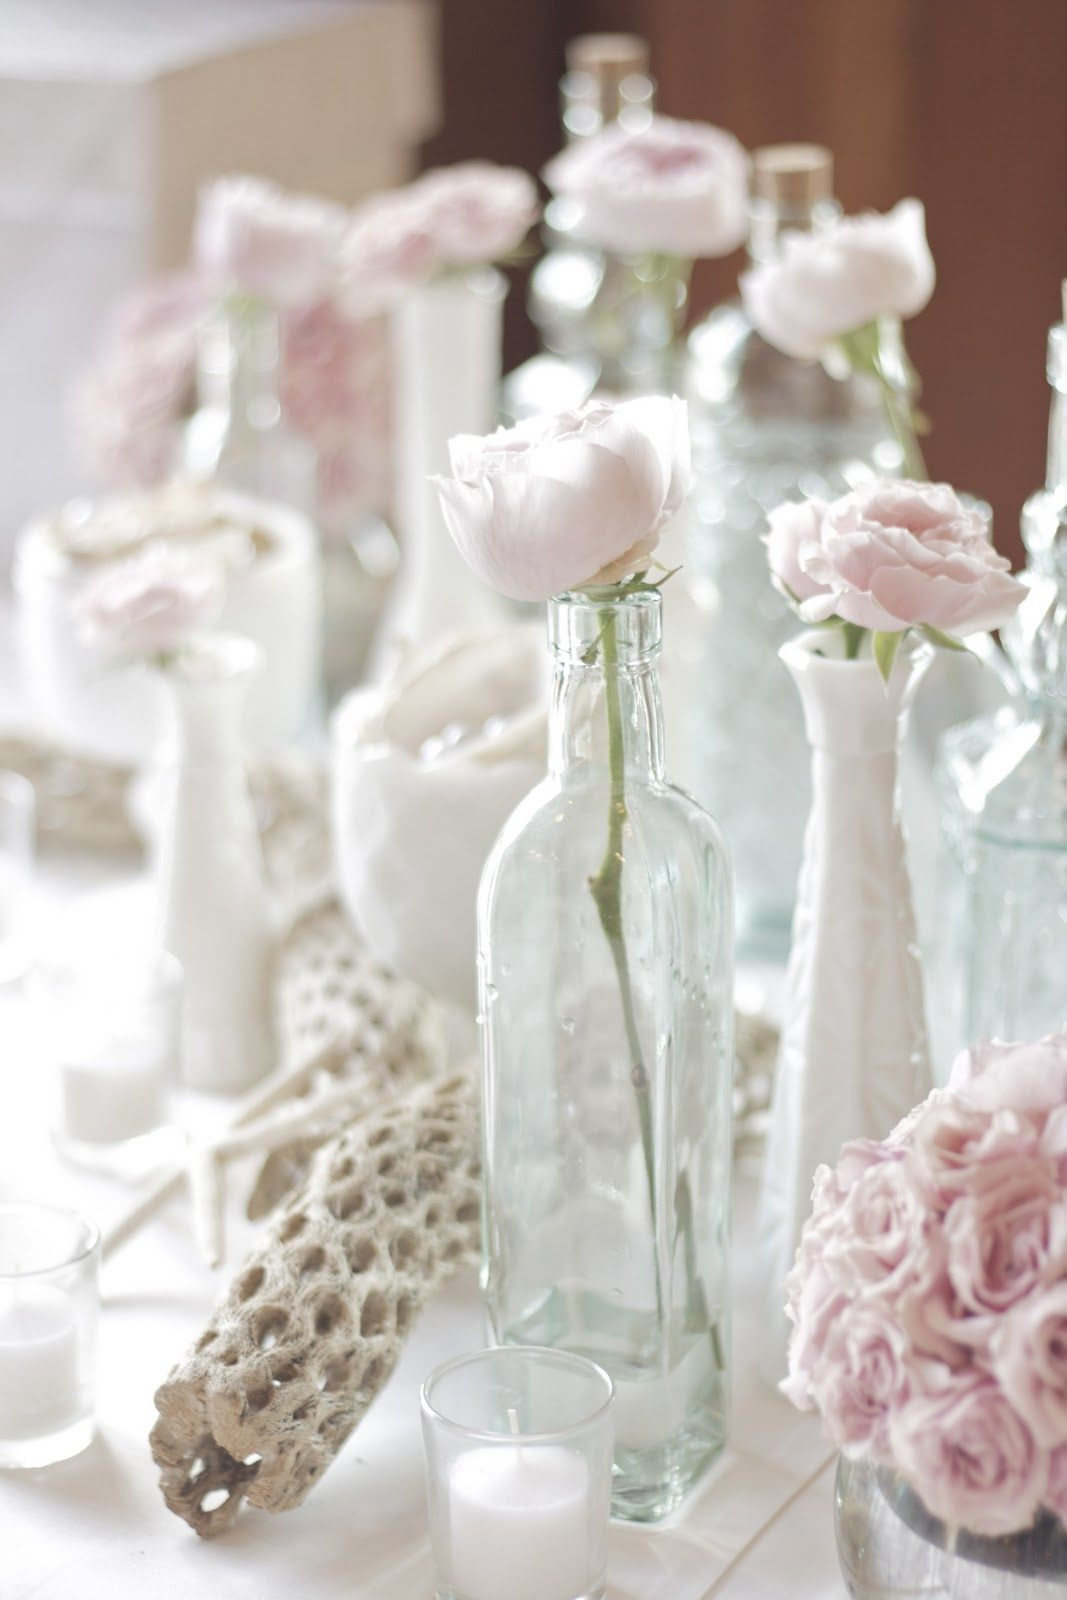 milk vases for centerpieces of single light pink antique roses in white milk vases and glass intended for single light pink antique roses in white milk vases and glass bottles